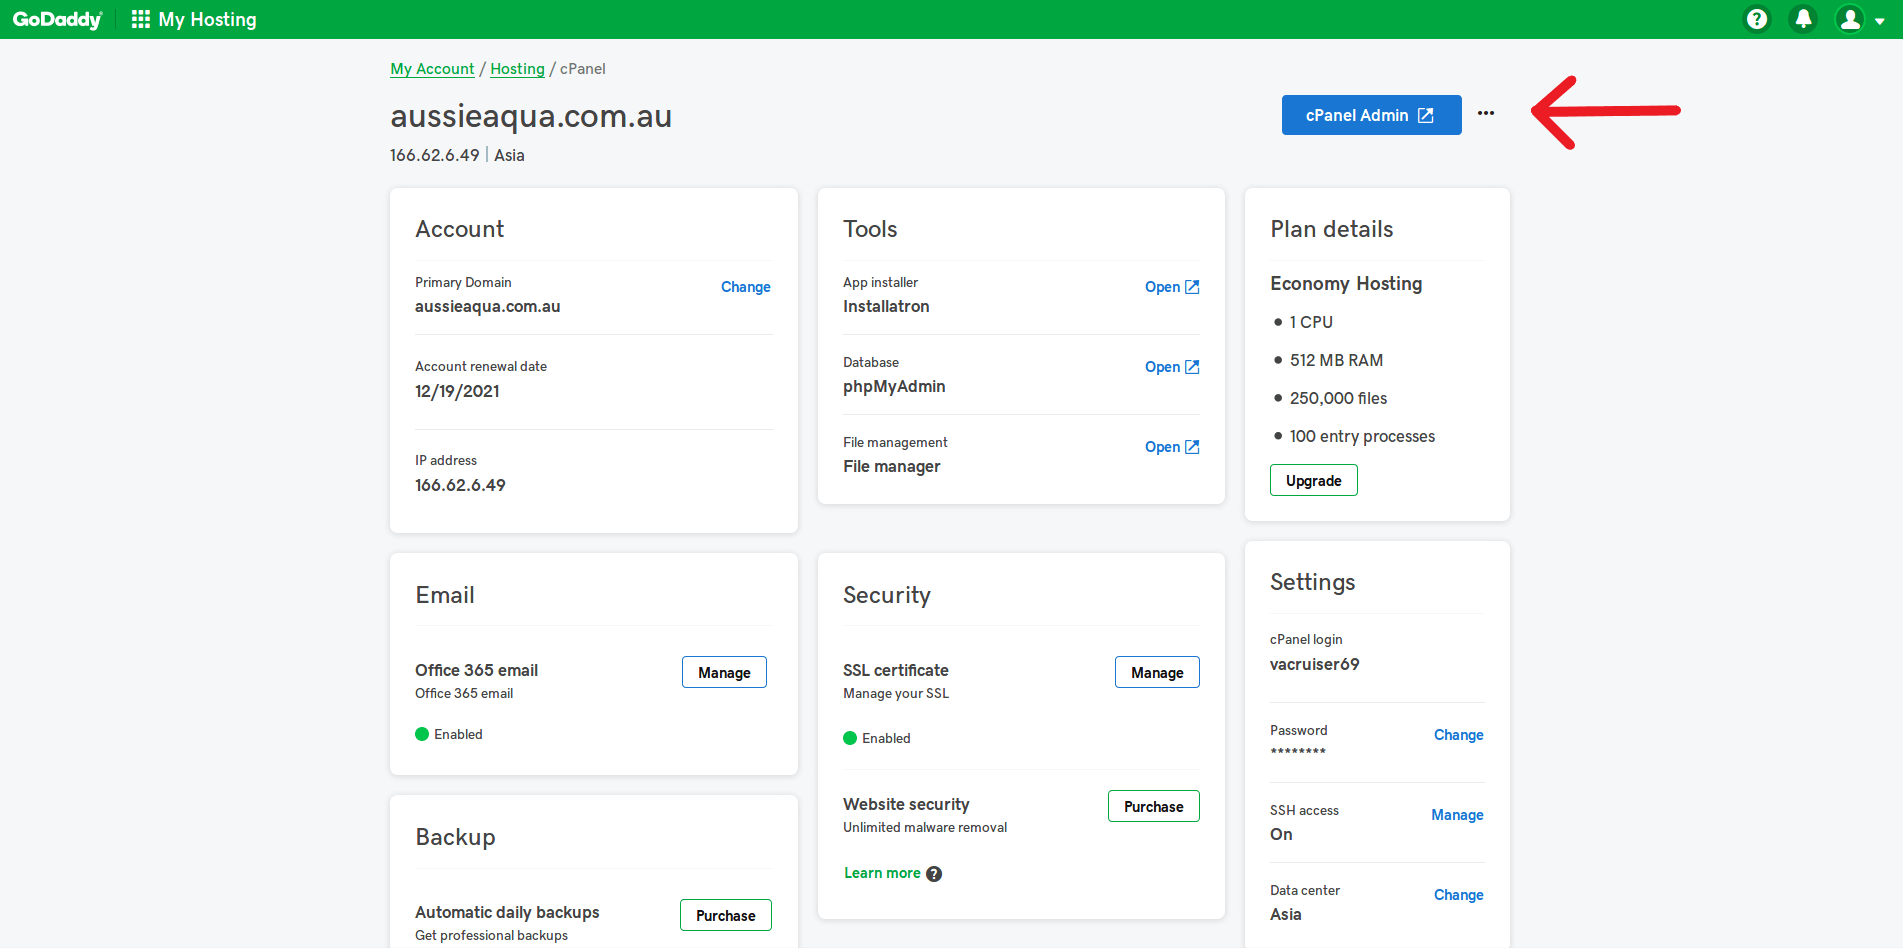 How to Migrate Your Website from GoDaddy to HostPapa